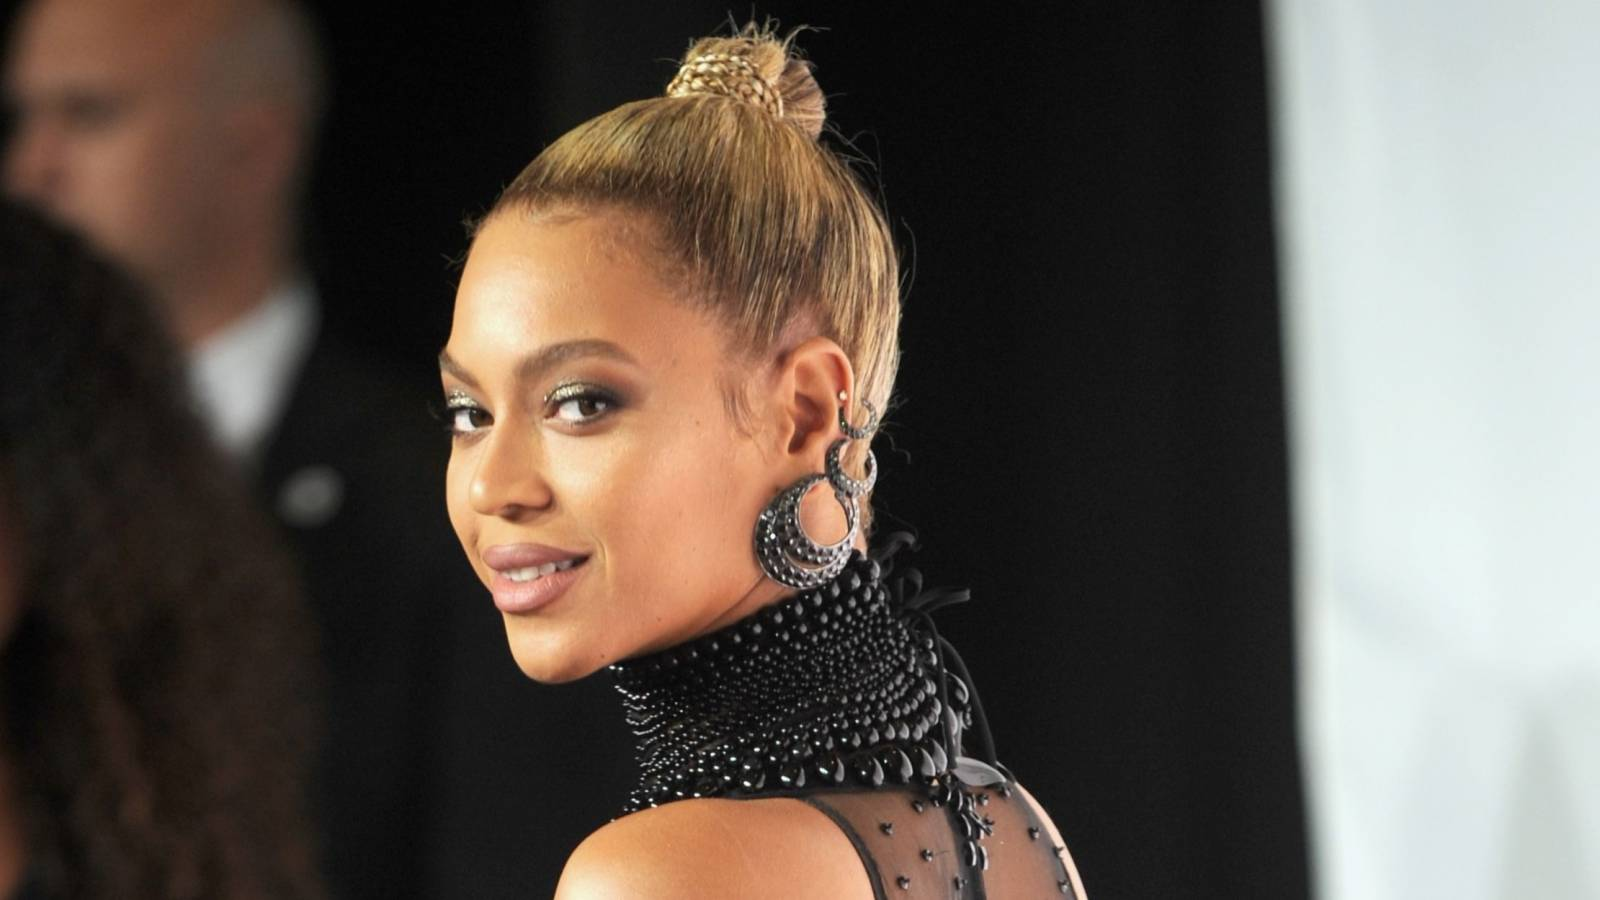 Beyoncé Visual Album 'Black Is King' Set For Disney Plus